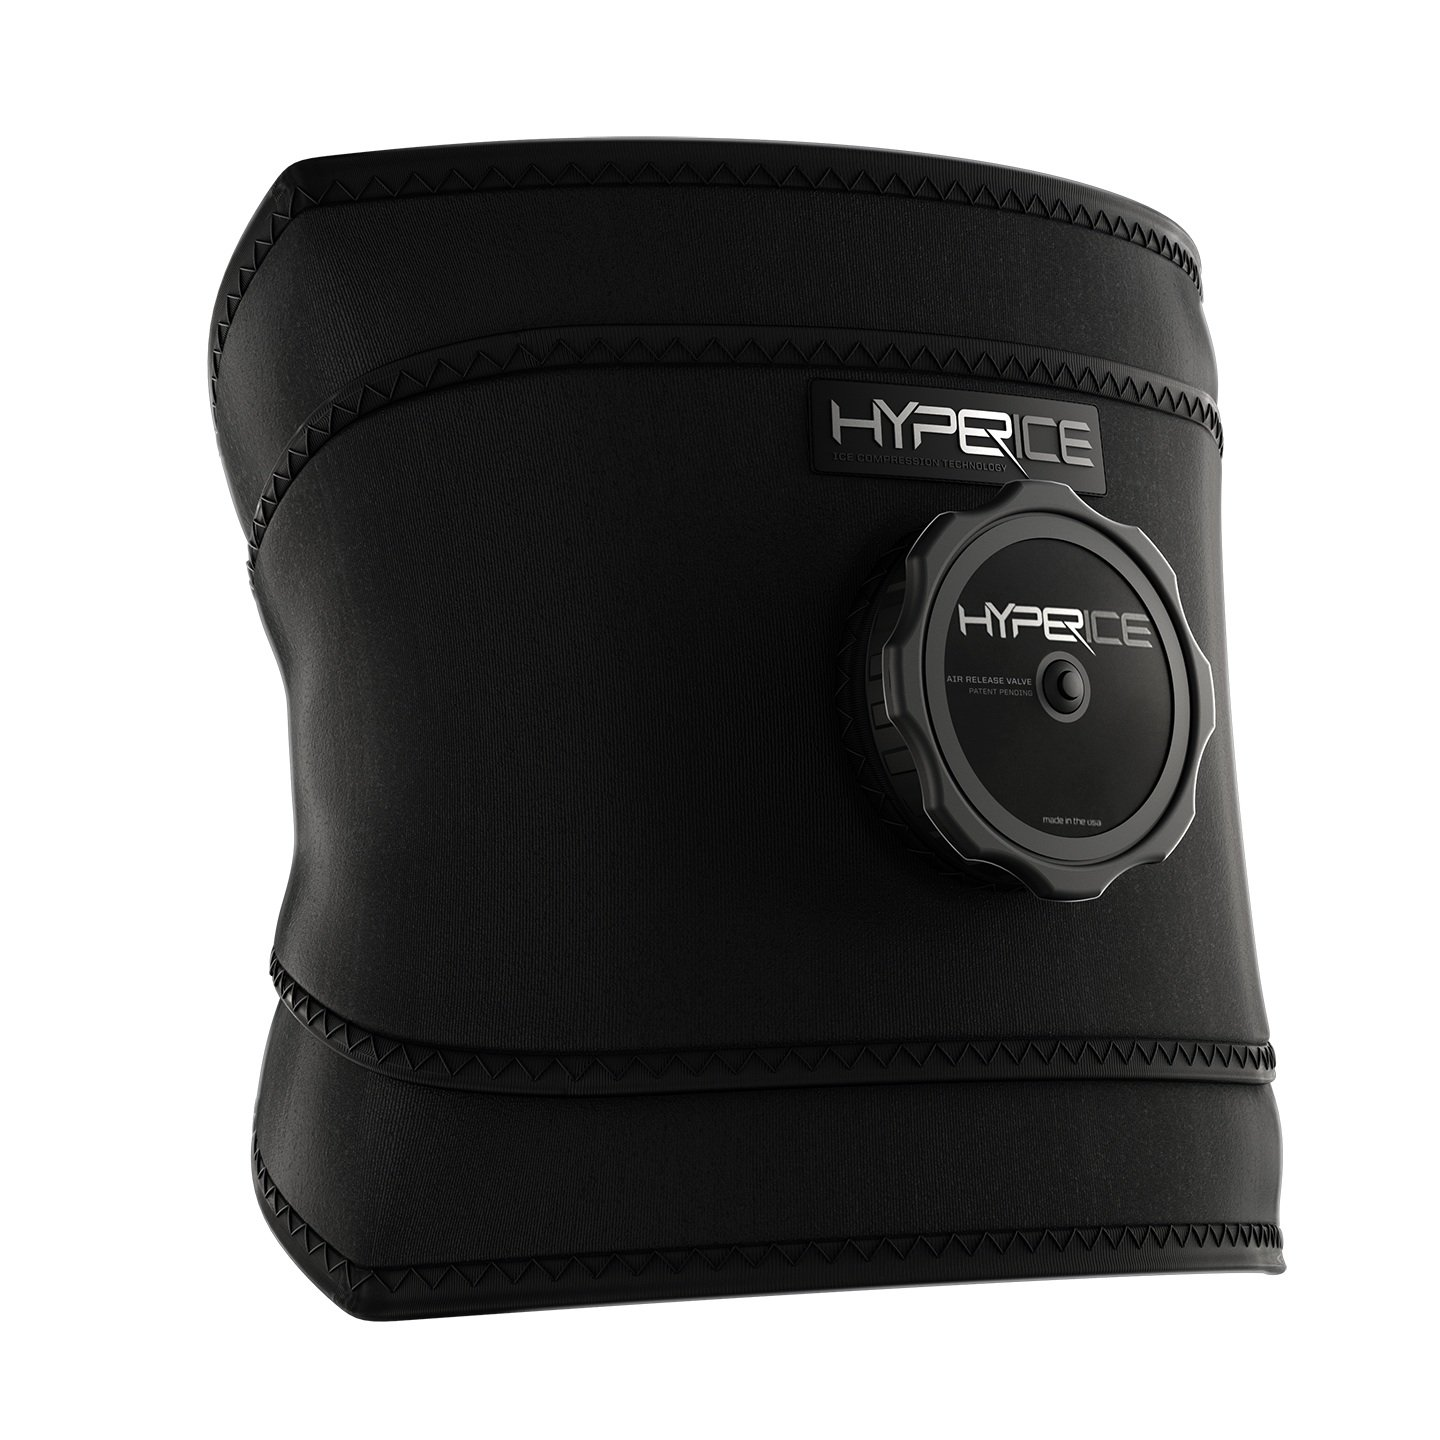 Hyperice Back Ice Compression Device by Hyperice